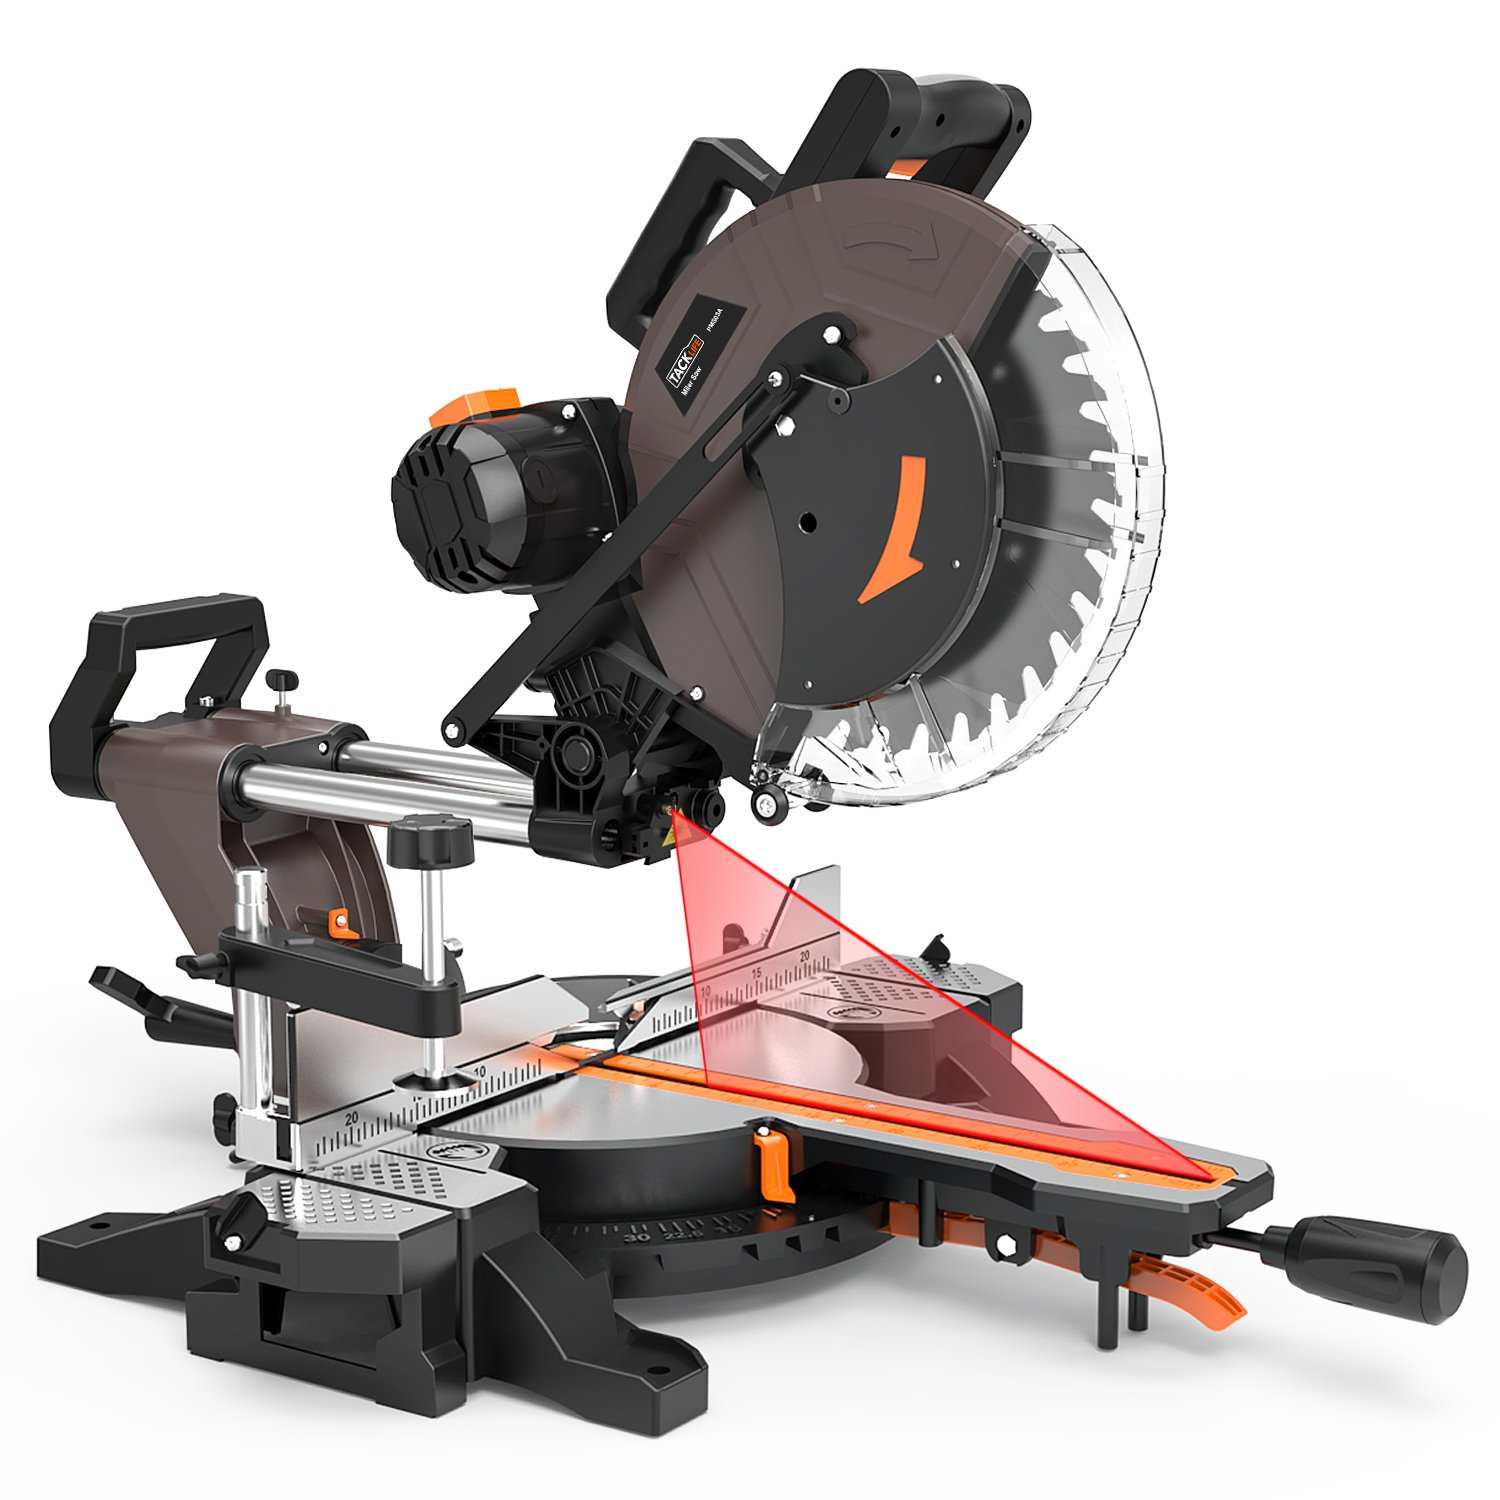 7. TACKLIFE PMS03A Double Bevel Compound Miter Saw